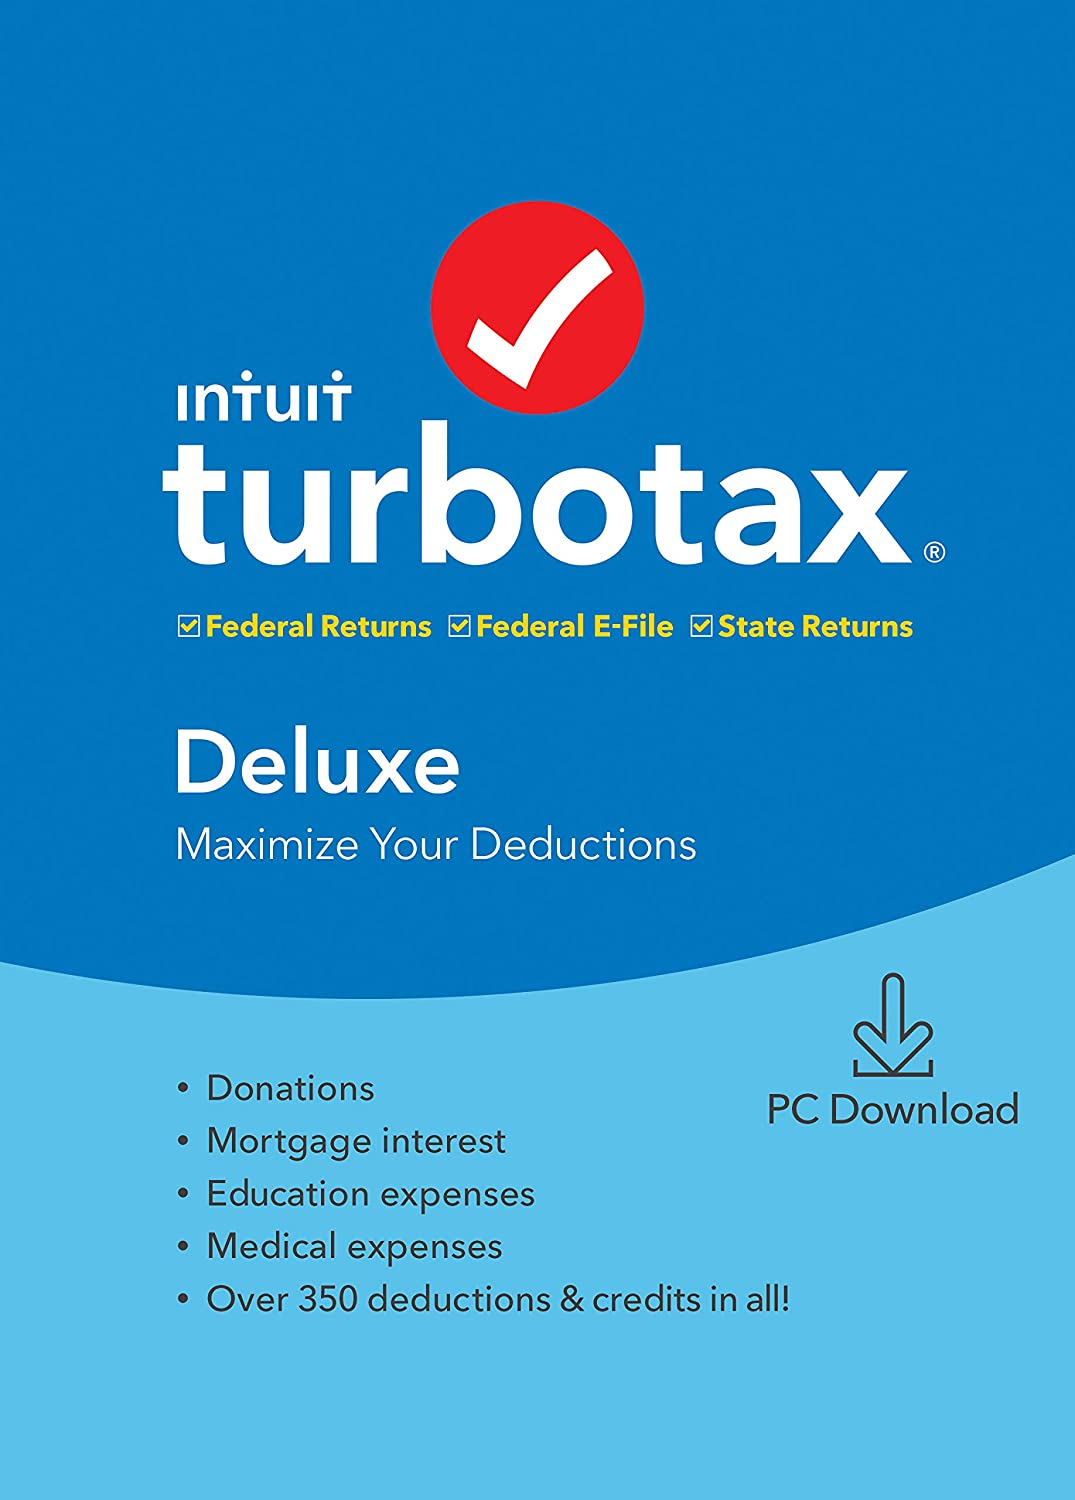 turbotax wont let me file for free